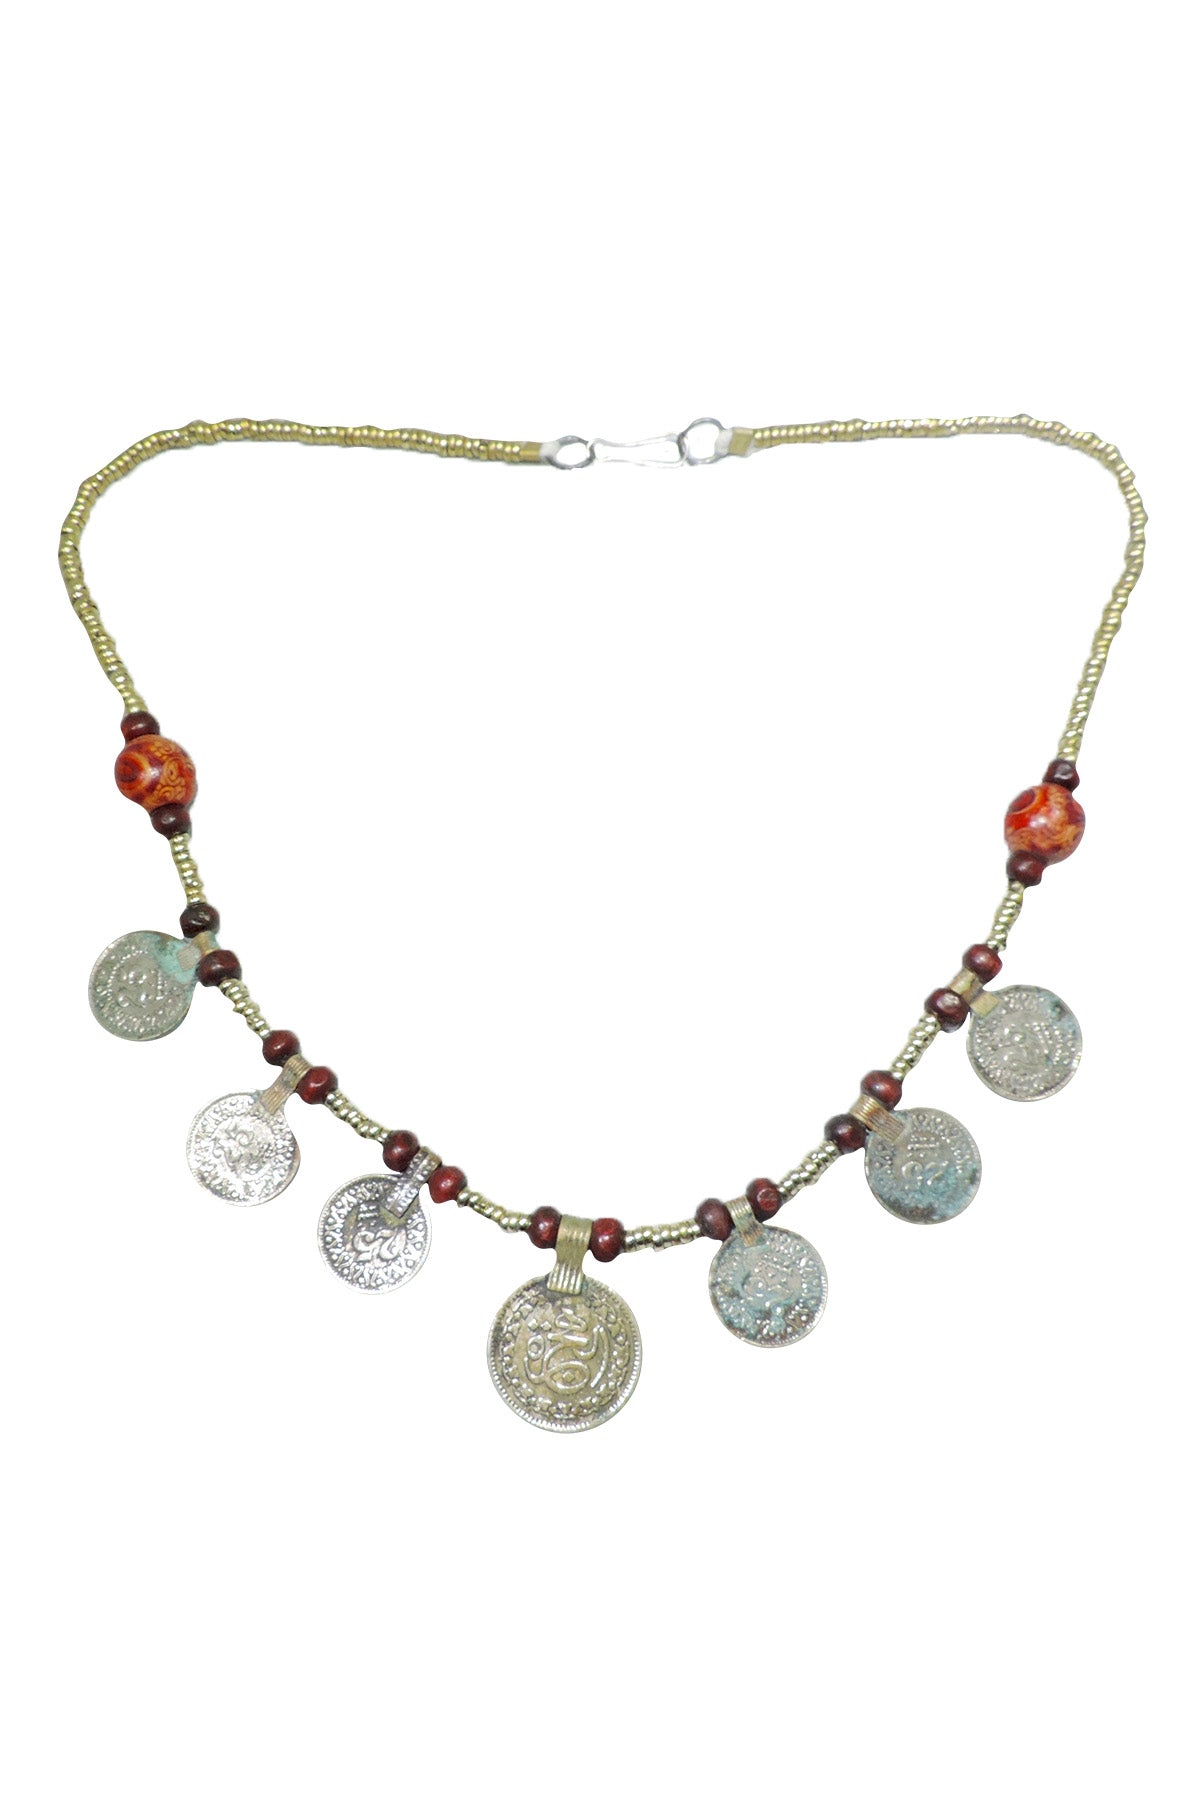 Tribal coin necklace with wooden beads